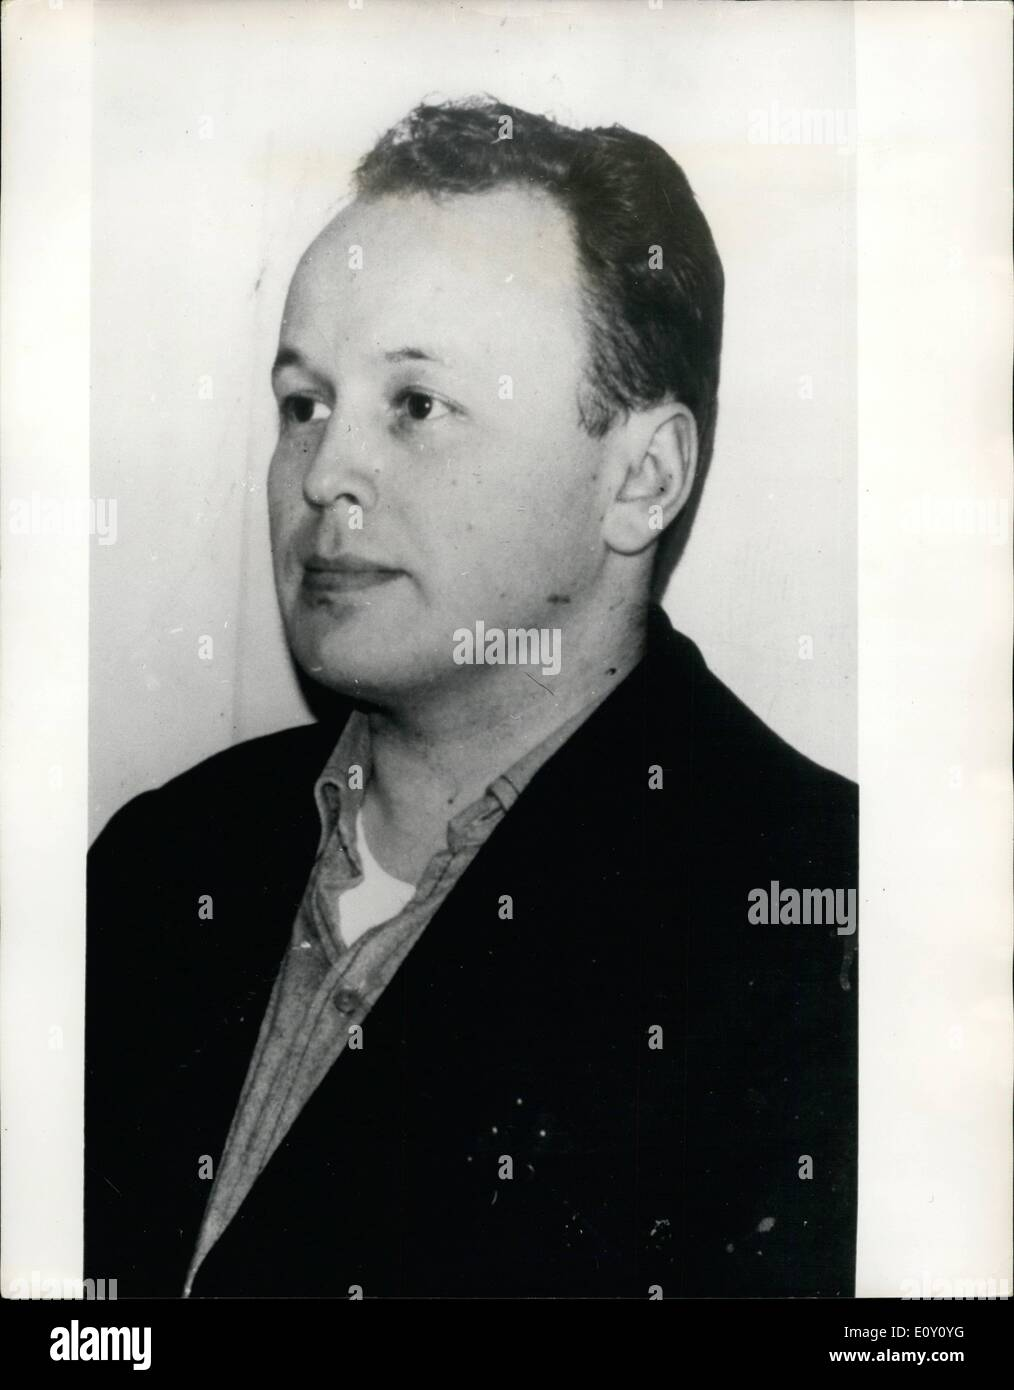 Mar. 03, 1968 - He Never Bothered To Count The Loot! The Danish police have caught bank robber, Matti Markkanen, a Finnish citizen who has admitted seven robberies, mostly in banks, amounting to 140,000 D.KR. He told the police that he never counted the money after a robbery - it was easier to read the exact figure the day after in the newspapers. Photo Shows:- Bank robber Matti Markkanen - he never bothered to count the loot! - Stock Image